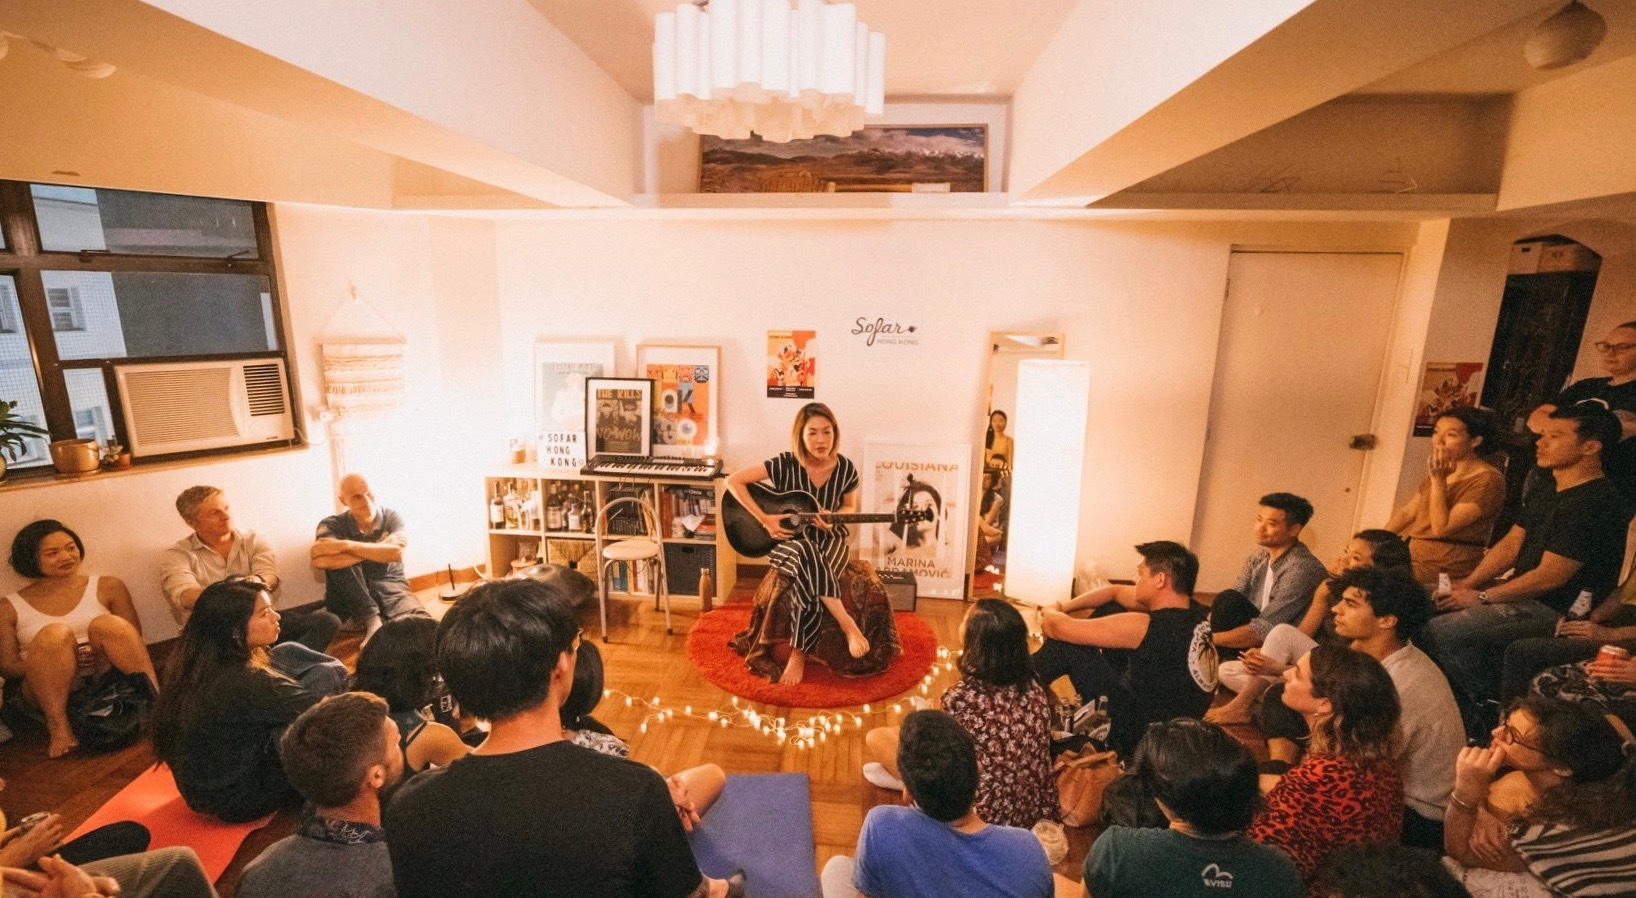 Sofar Sounds_09022020